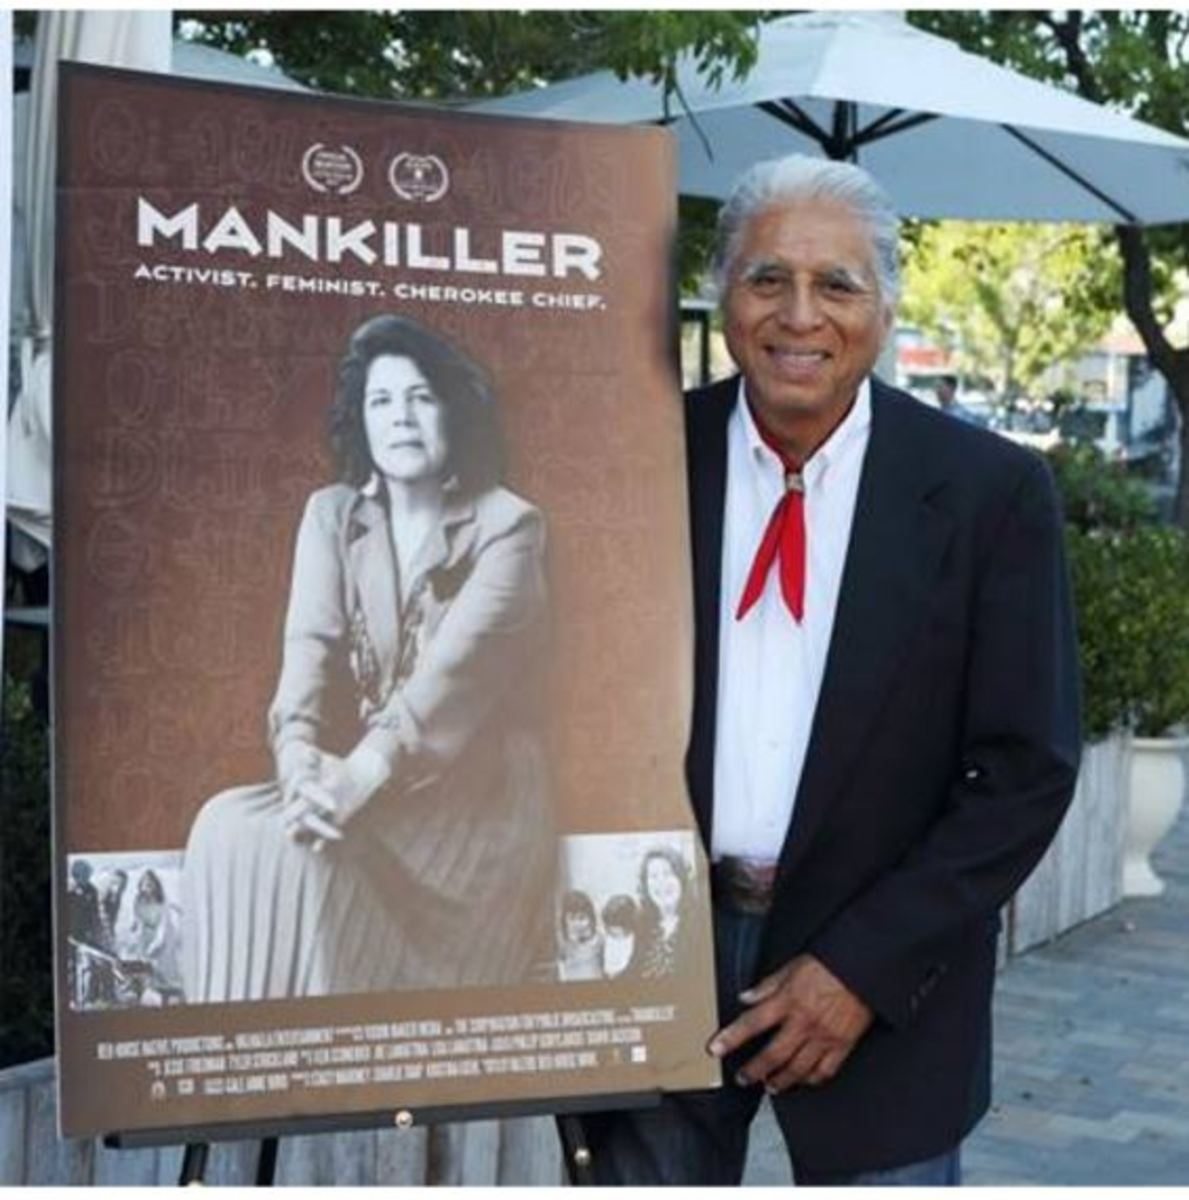 Charlie Soap, husband of Wilma Mankiller at the 'Mankiller' film premiere.